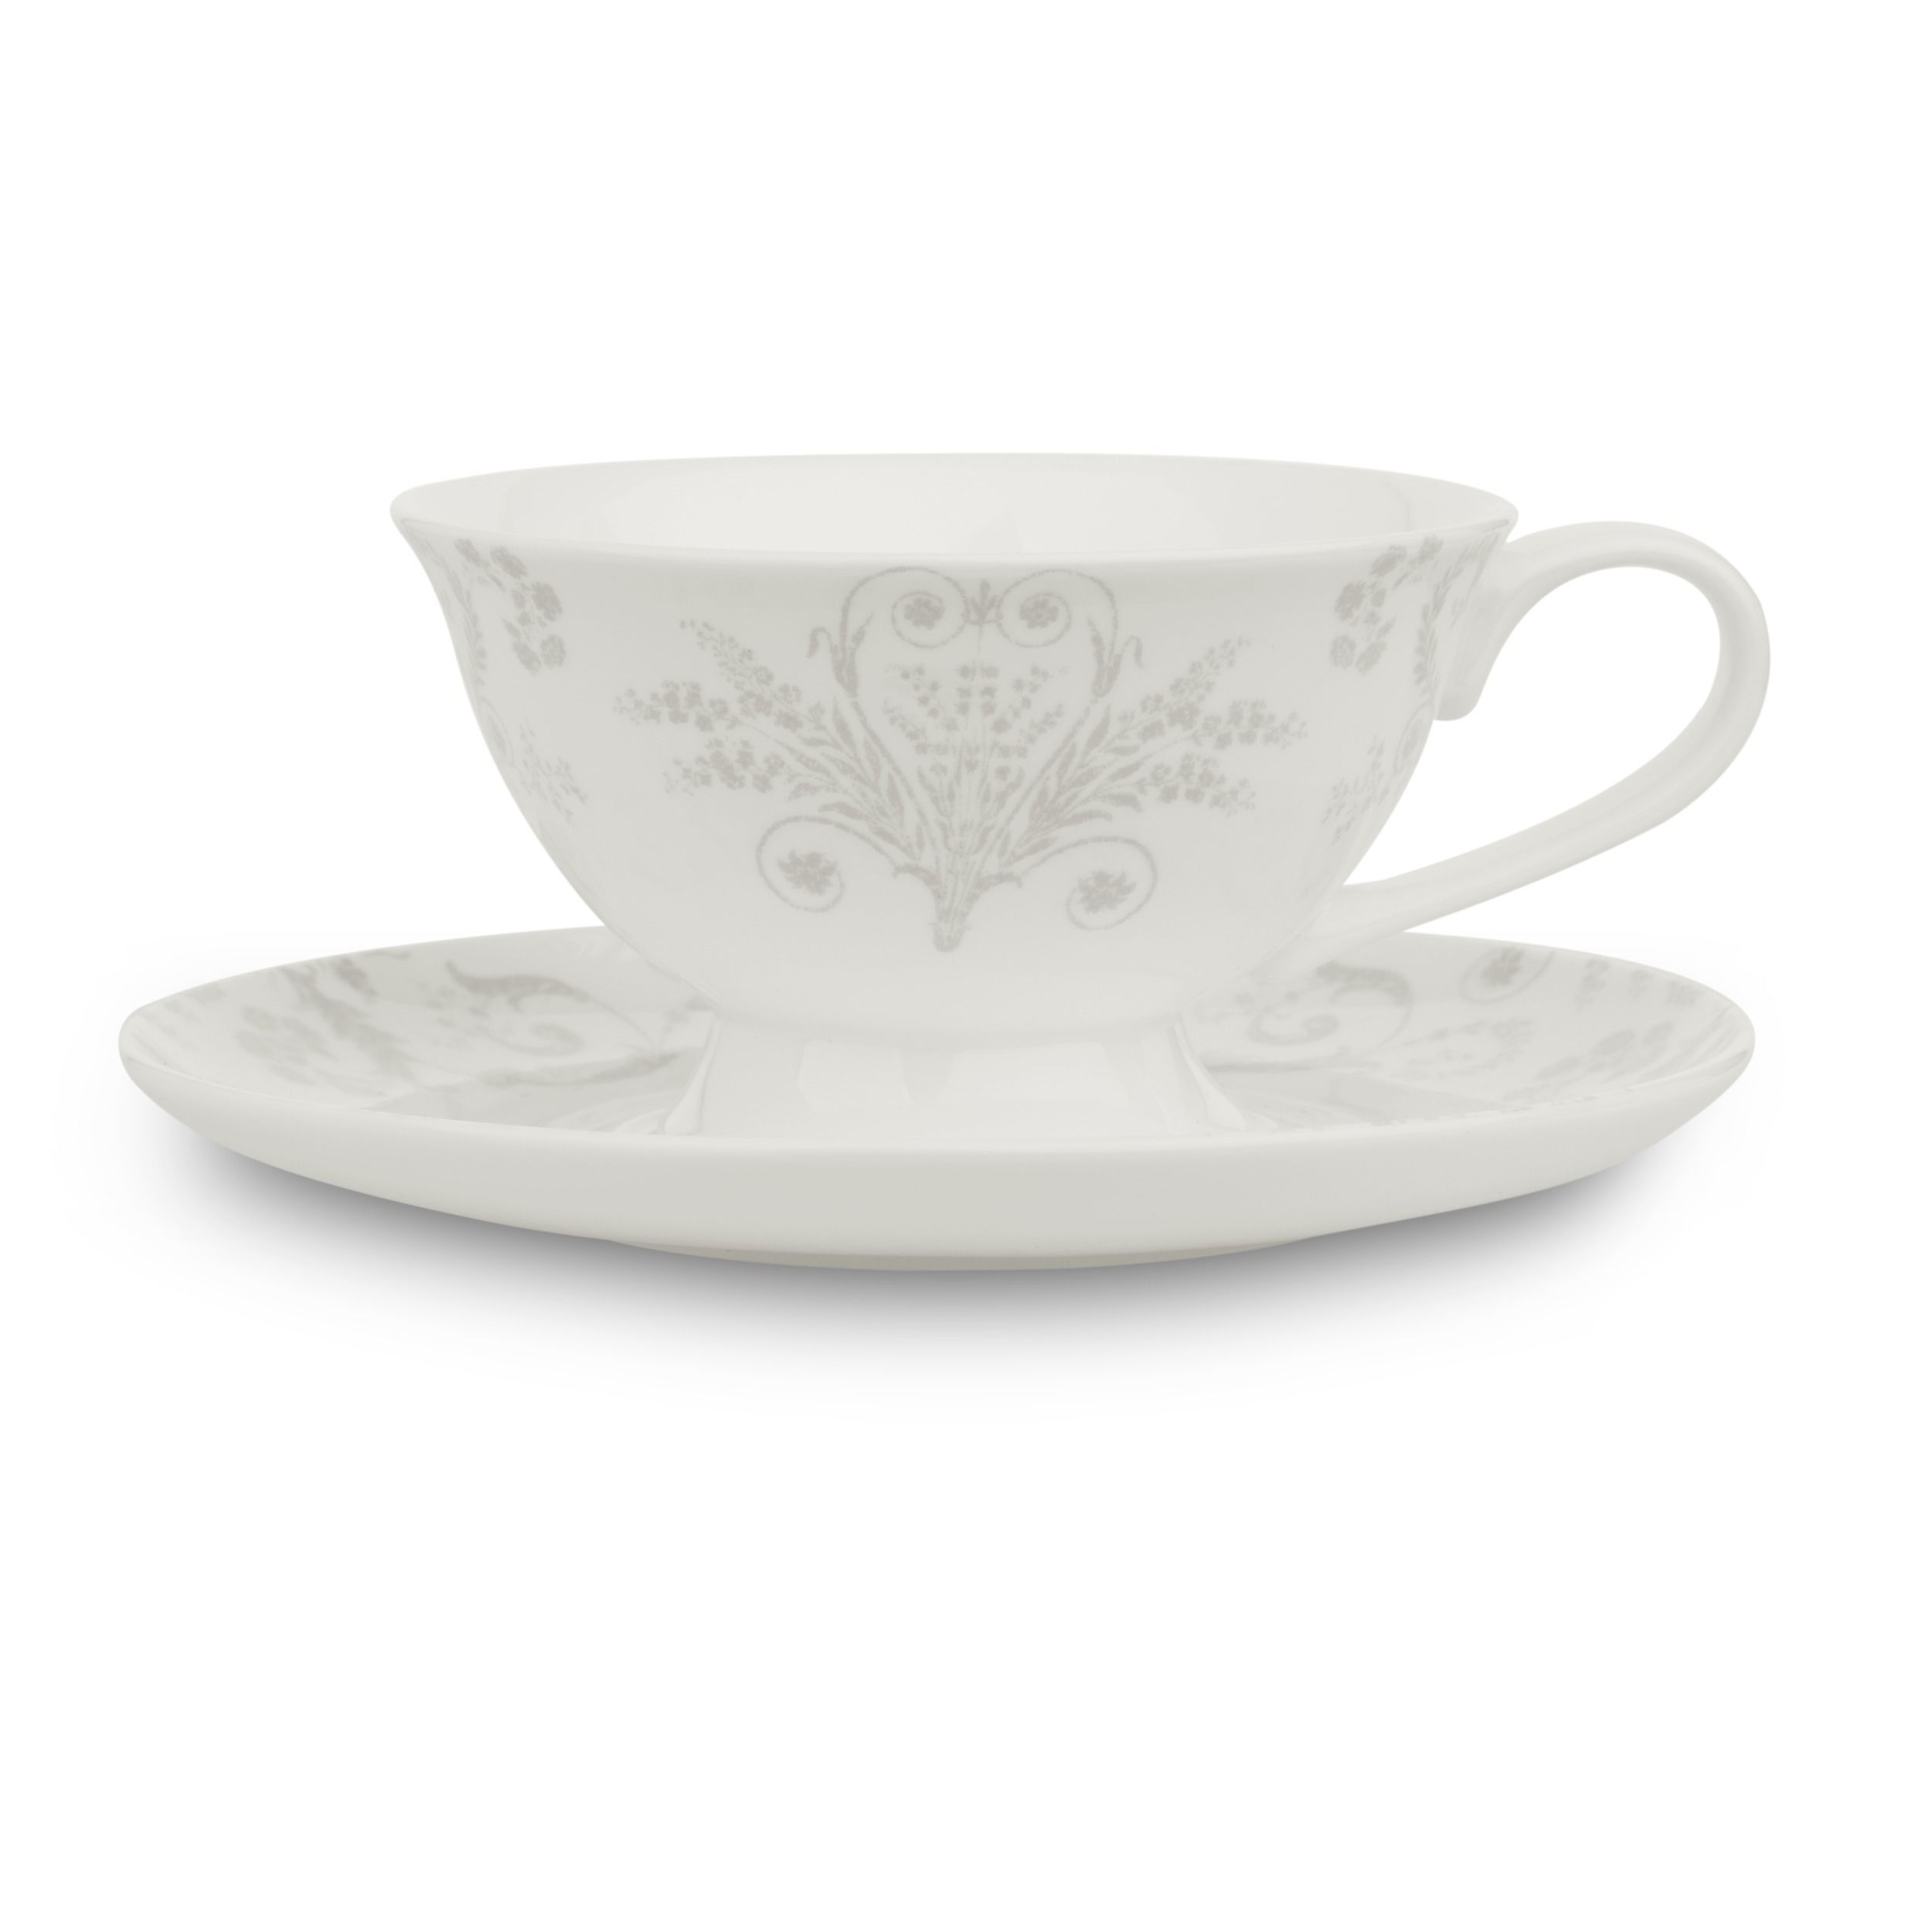 Josette Dove Grey China Cup And Saucer At Laura Ashley